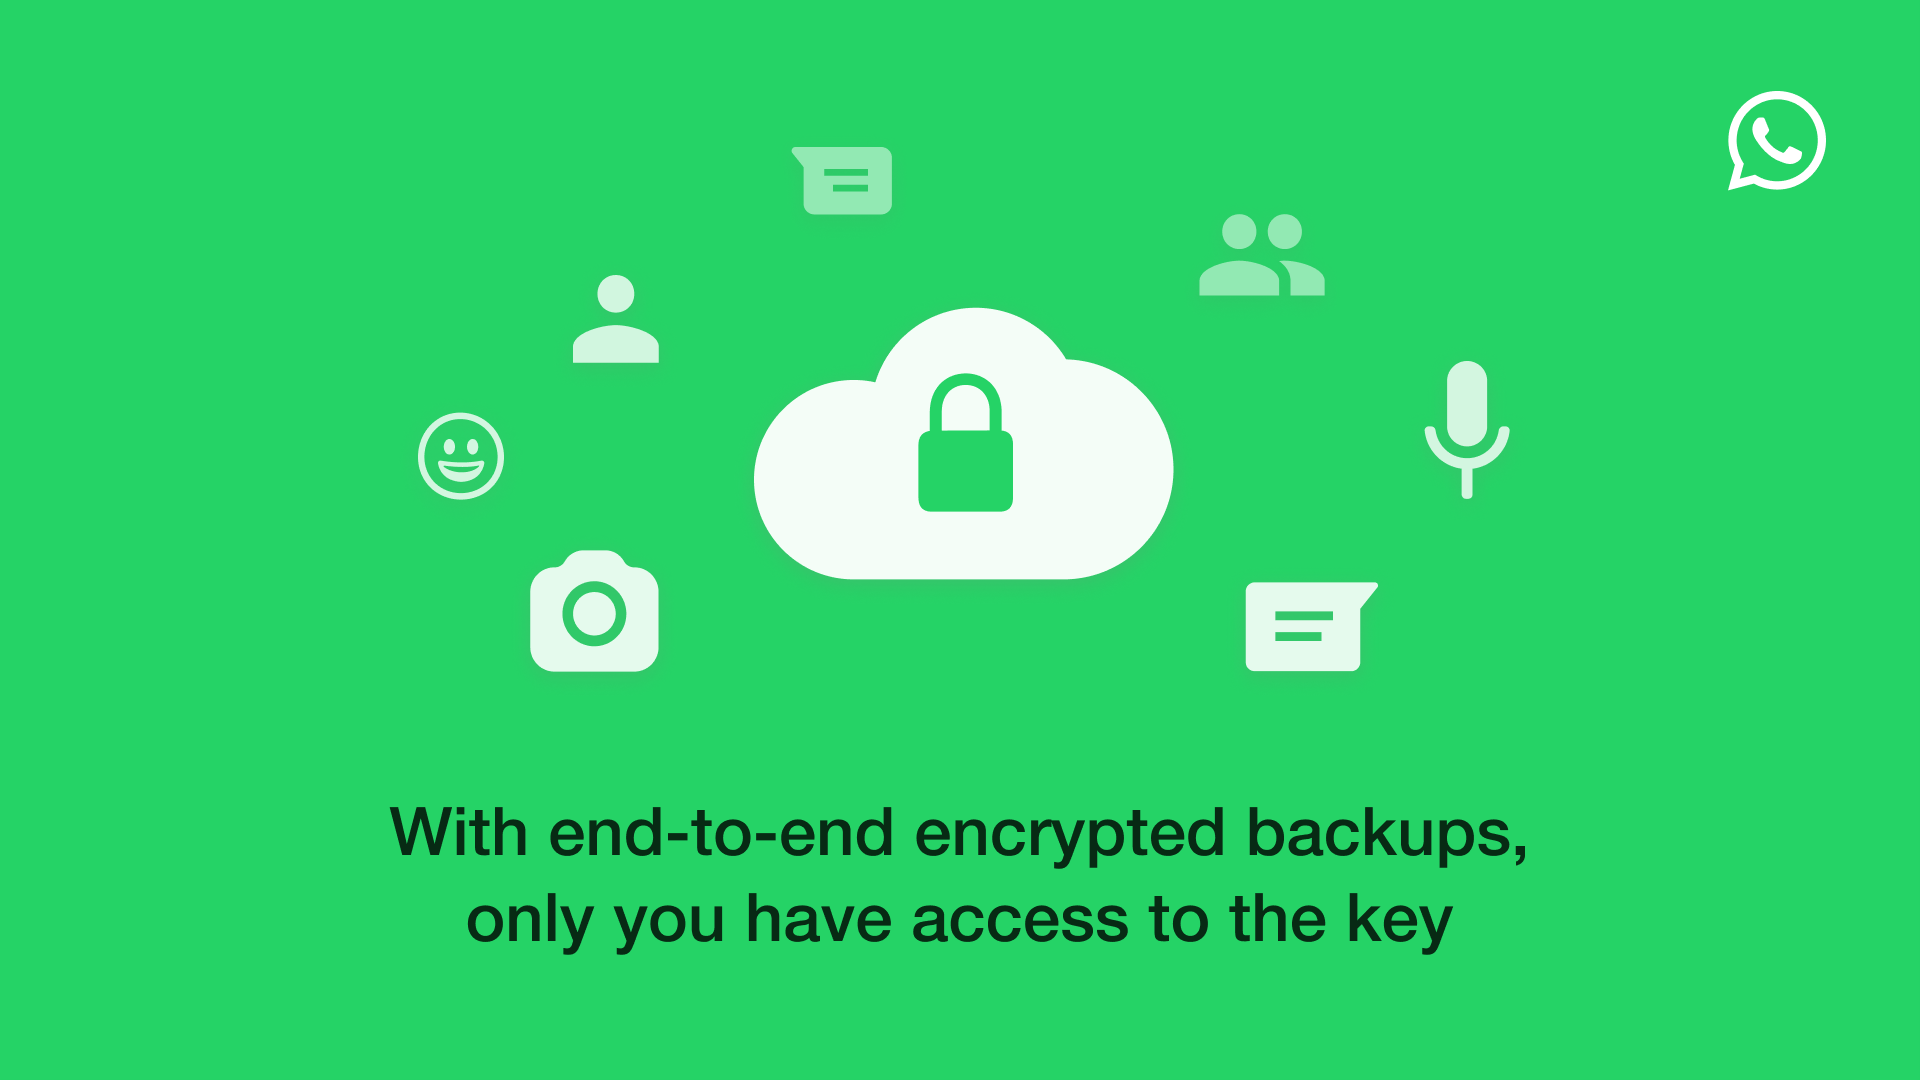 WhatsApp to Introduce Encrypted Cloud Backups Soon